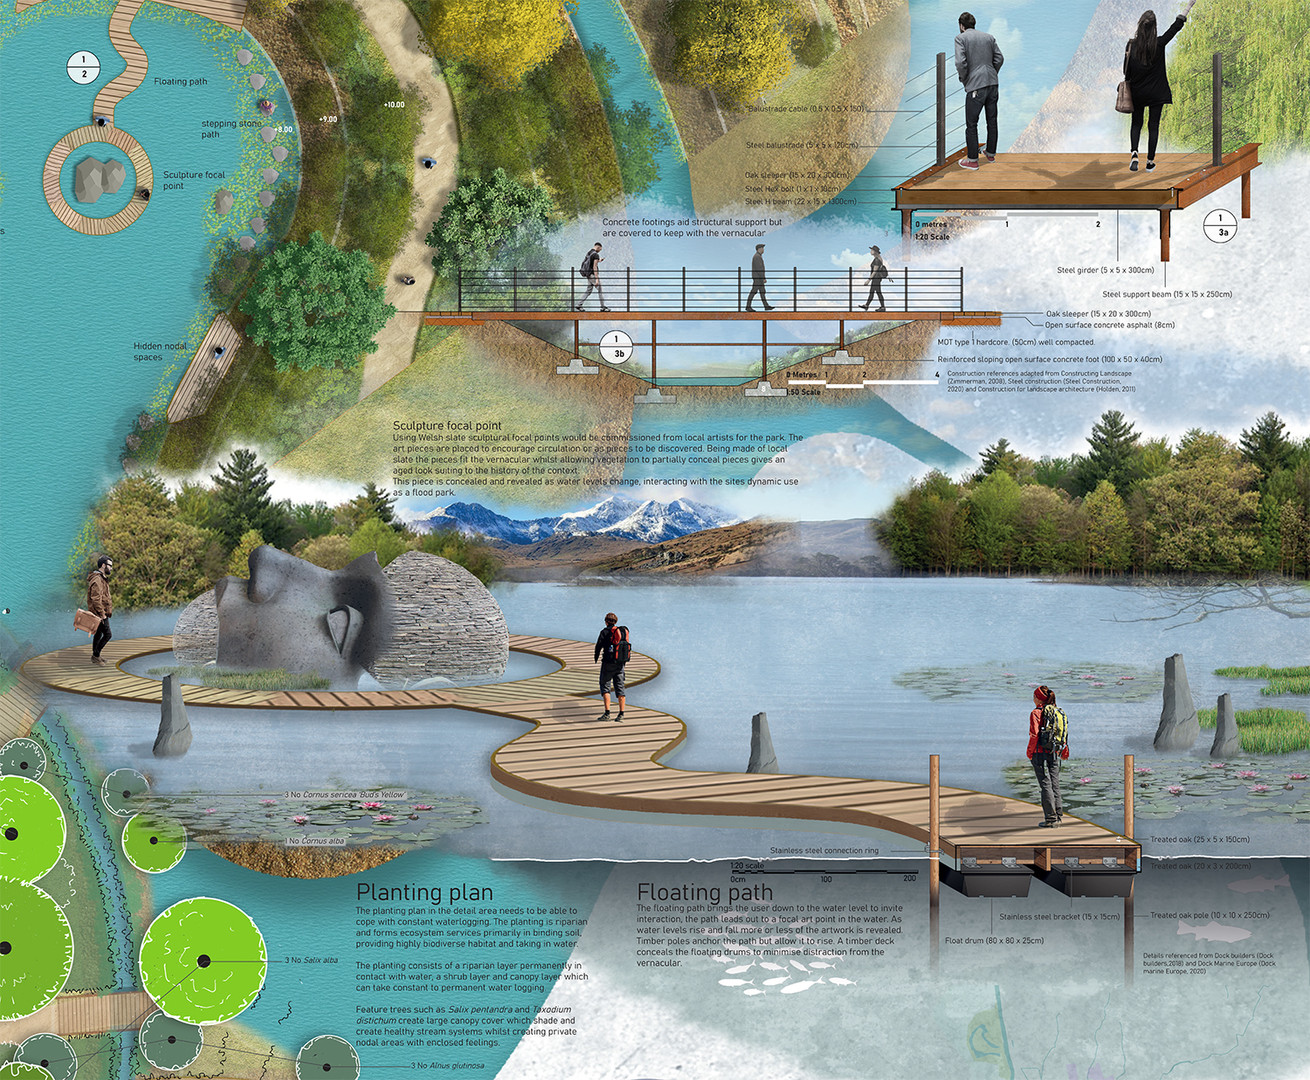 The floating path – Creating interaction with sites phenomena